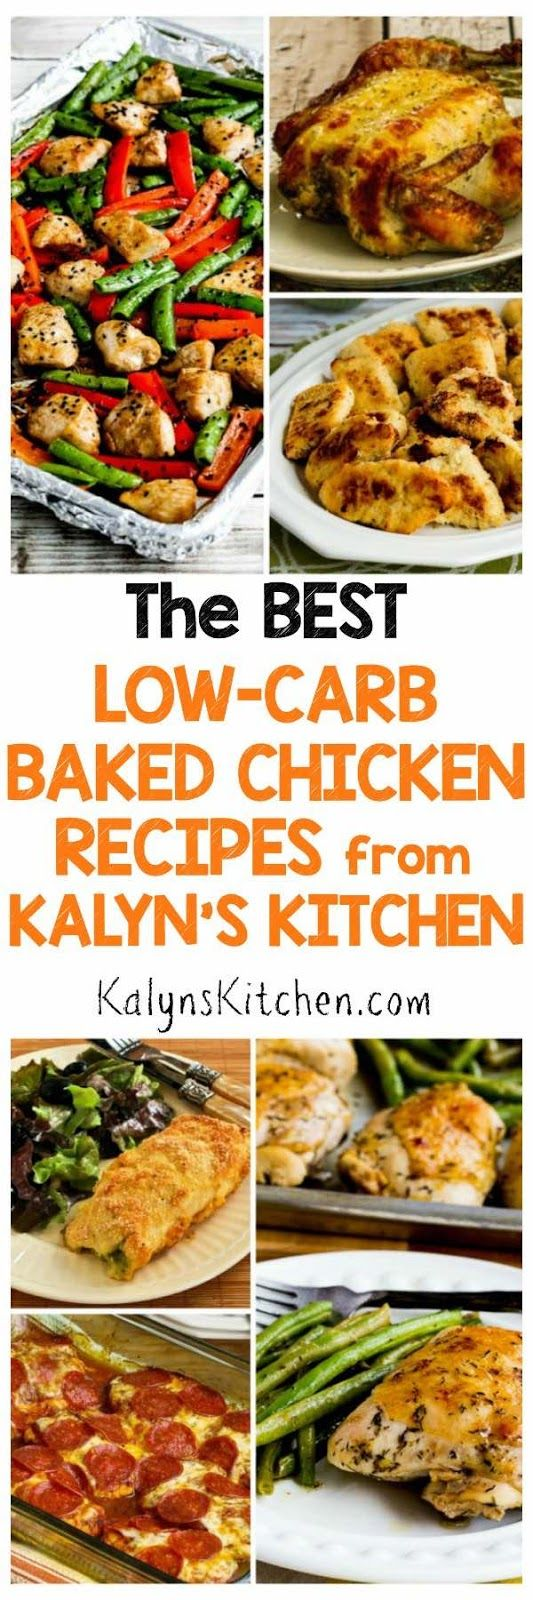 Everone needs a few great chicken dishes in their dinner rotation, and here are The BEST Low-Carb Baked Chicken Recipes from Kalyn's Kitchen. These recipes are all low-carb and gluten-free; most are Keto and South Beach Diet friendly as well. [featured for Low-Carb Recipe Love on KalynsKitchen.com]